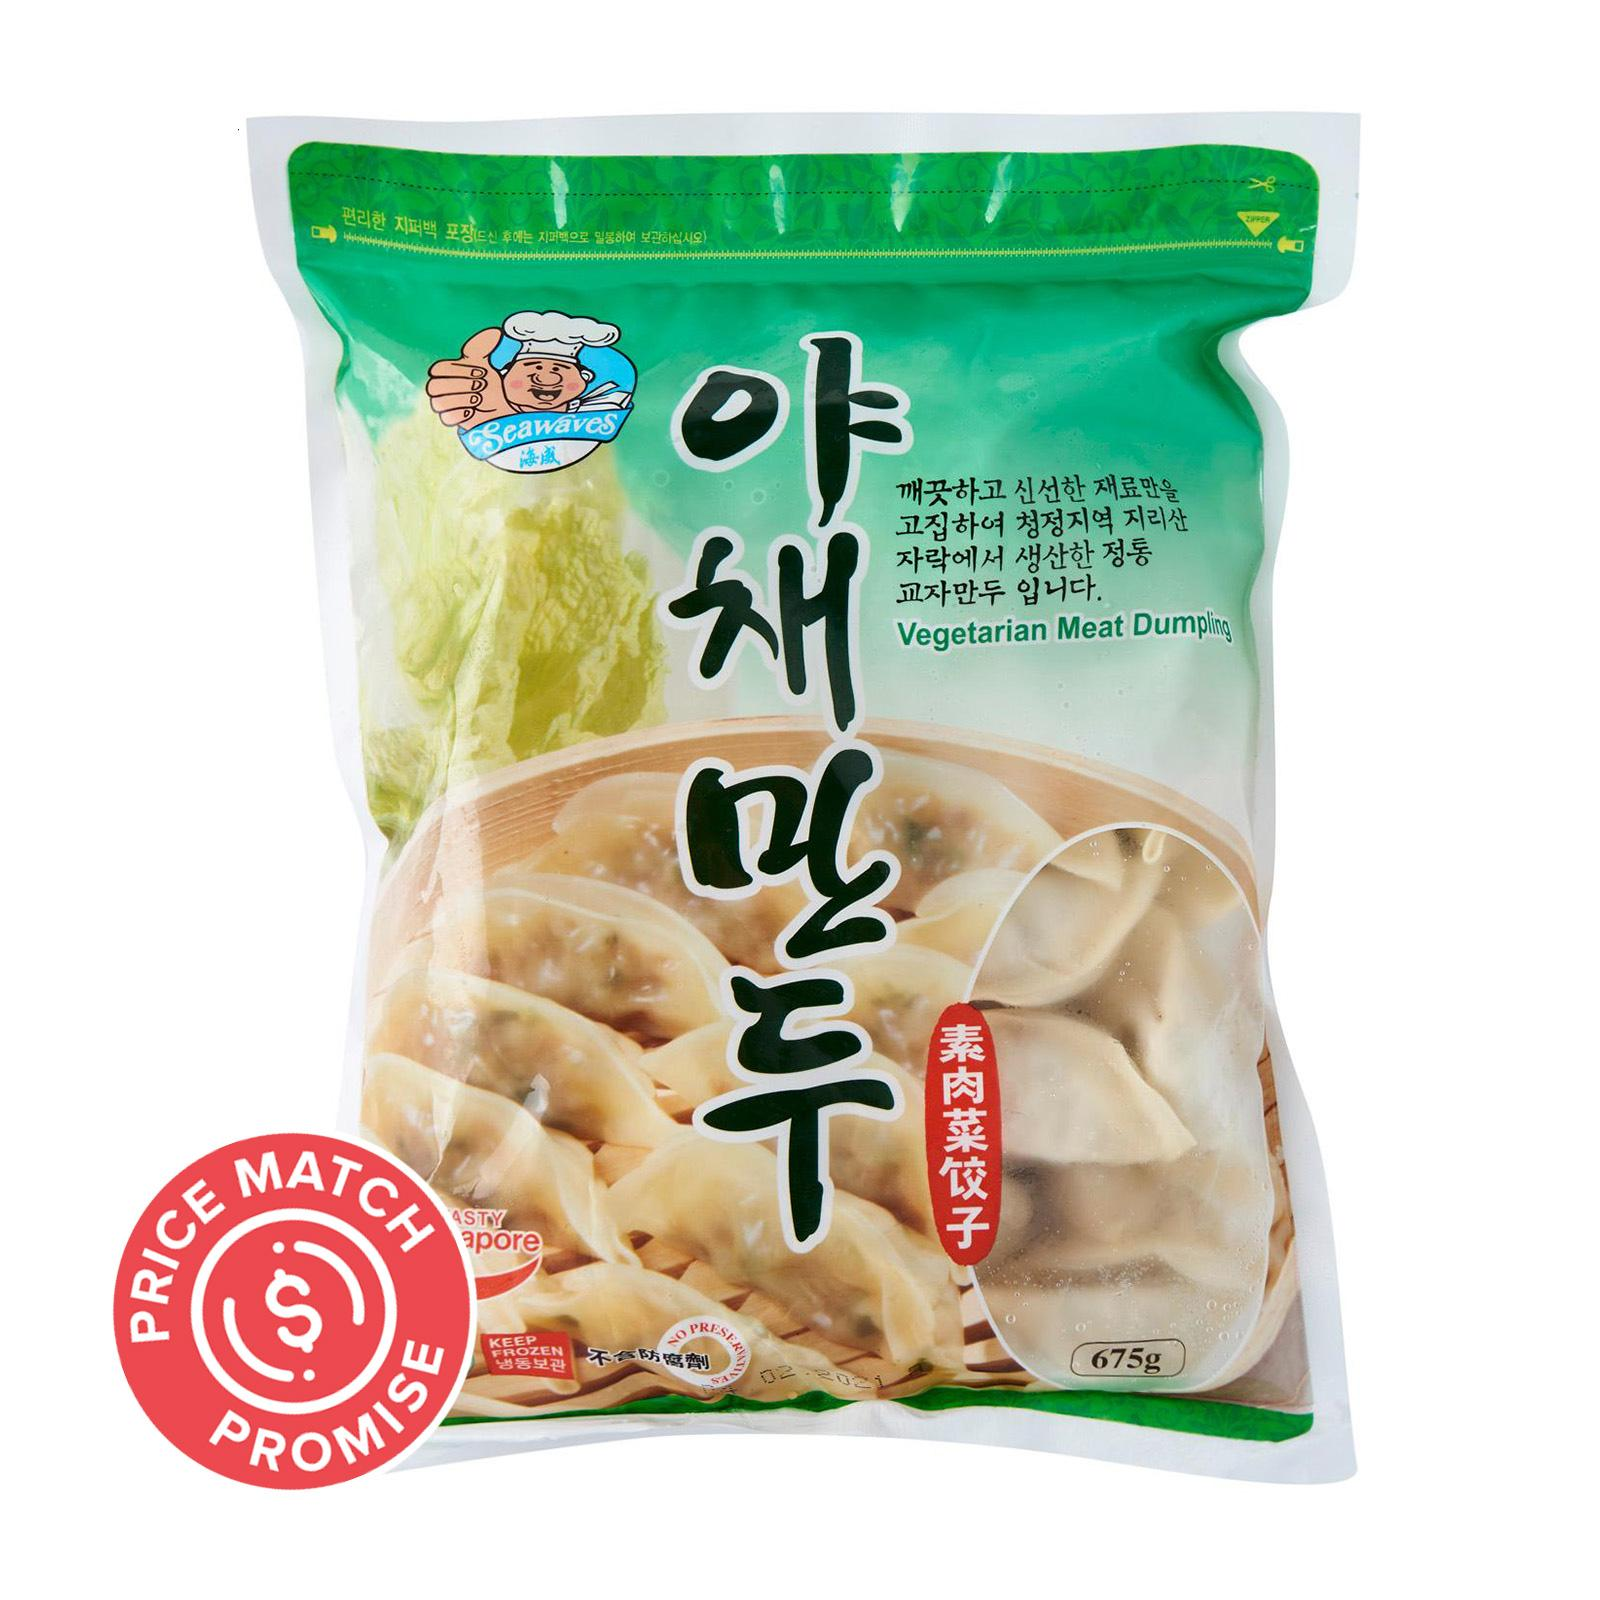 Seawaves Vegetarian Meat Dumpling - Frozen